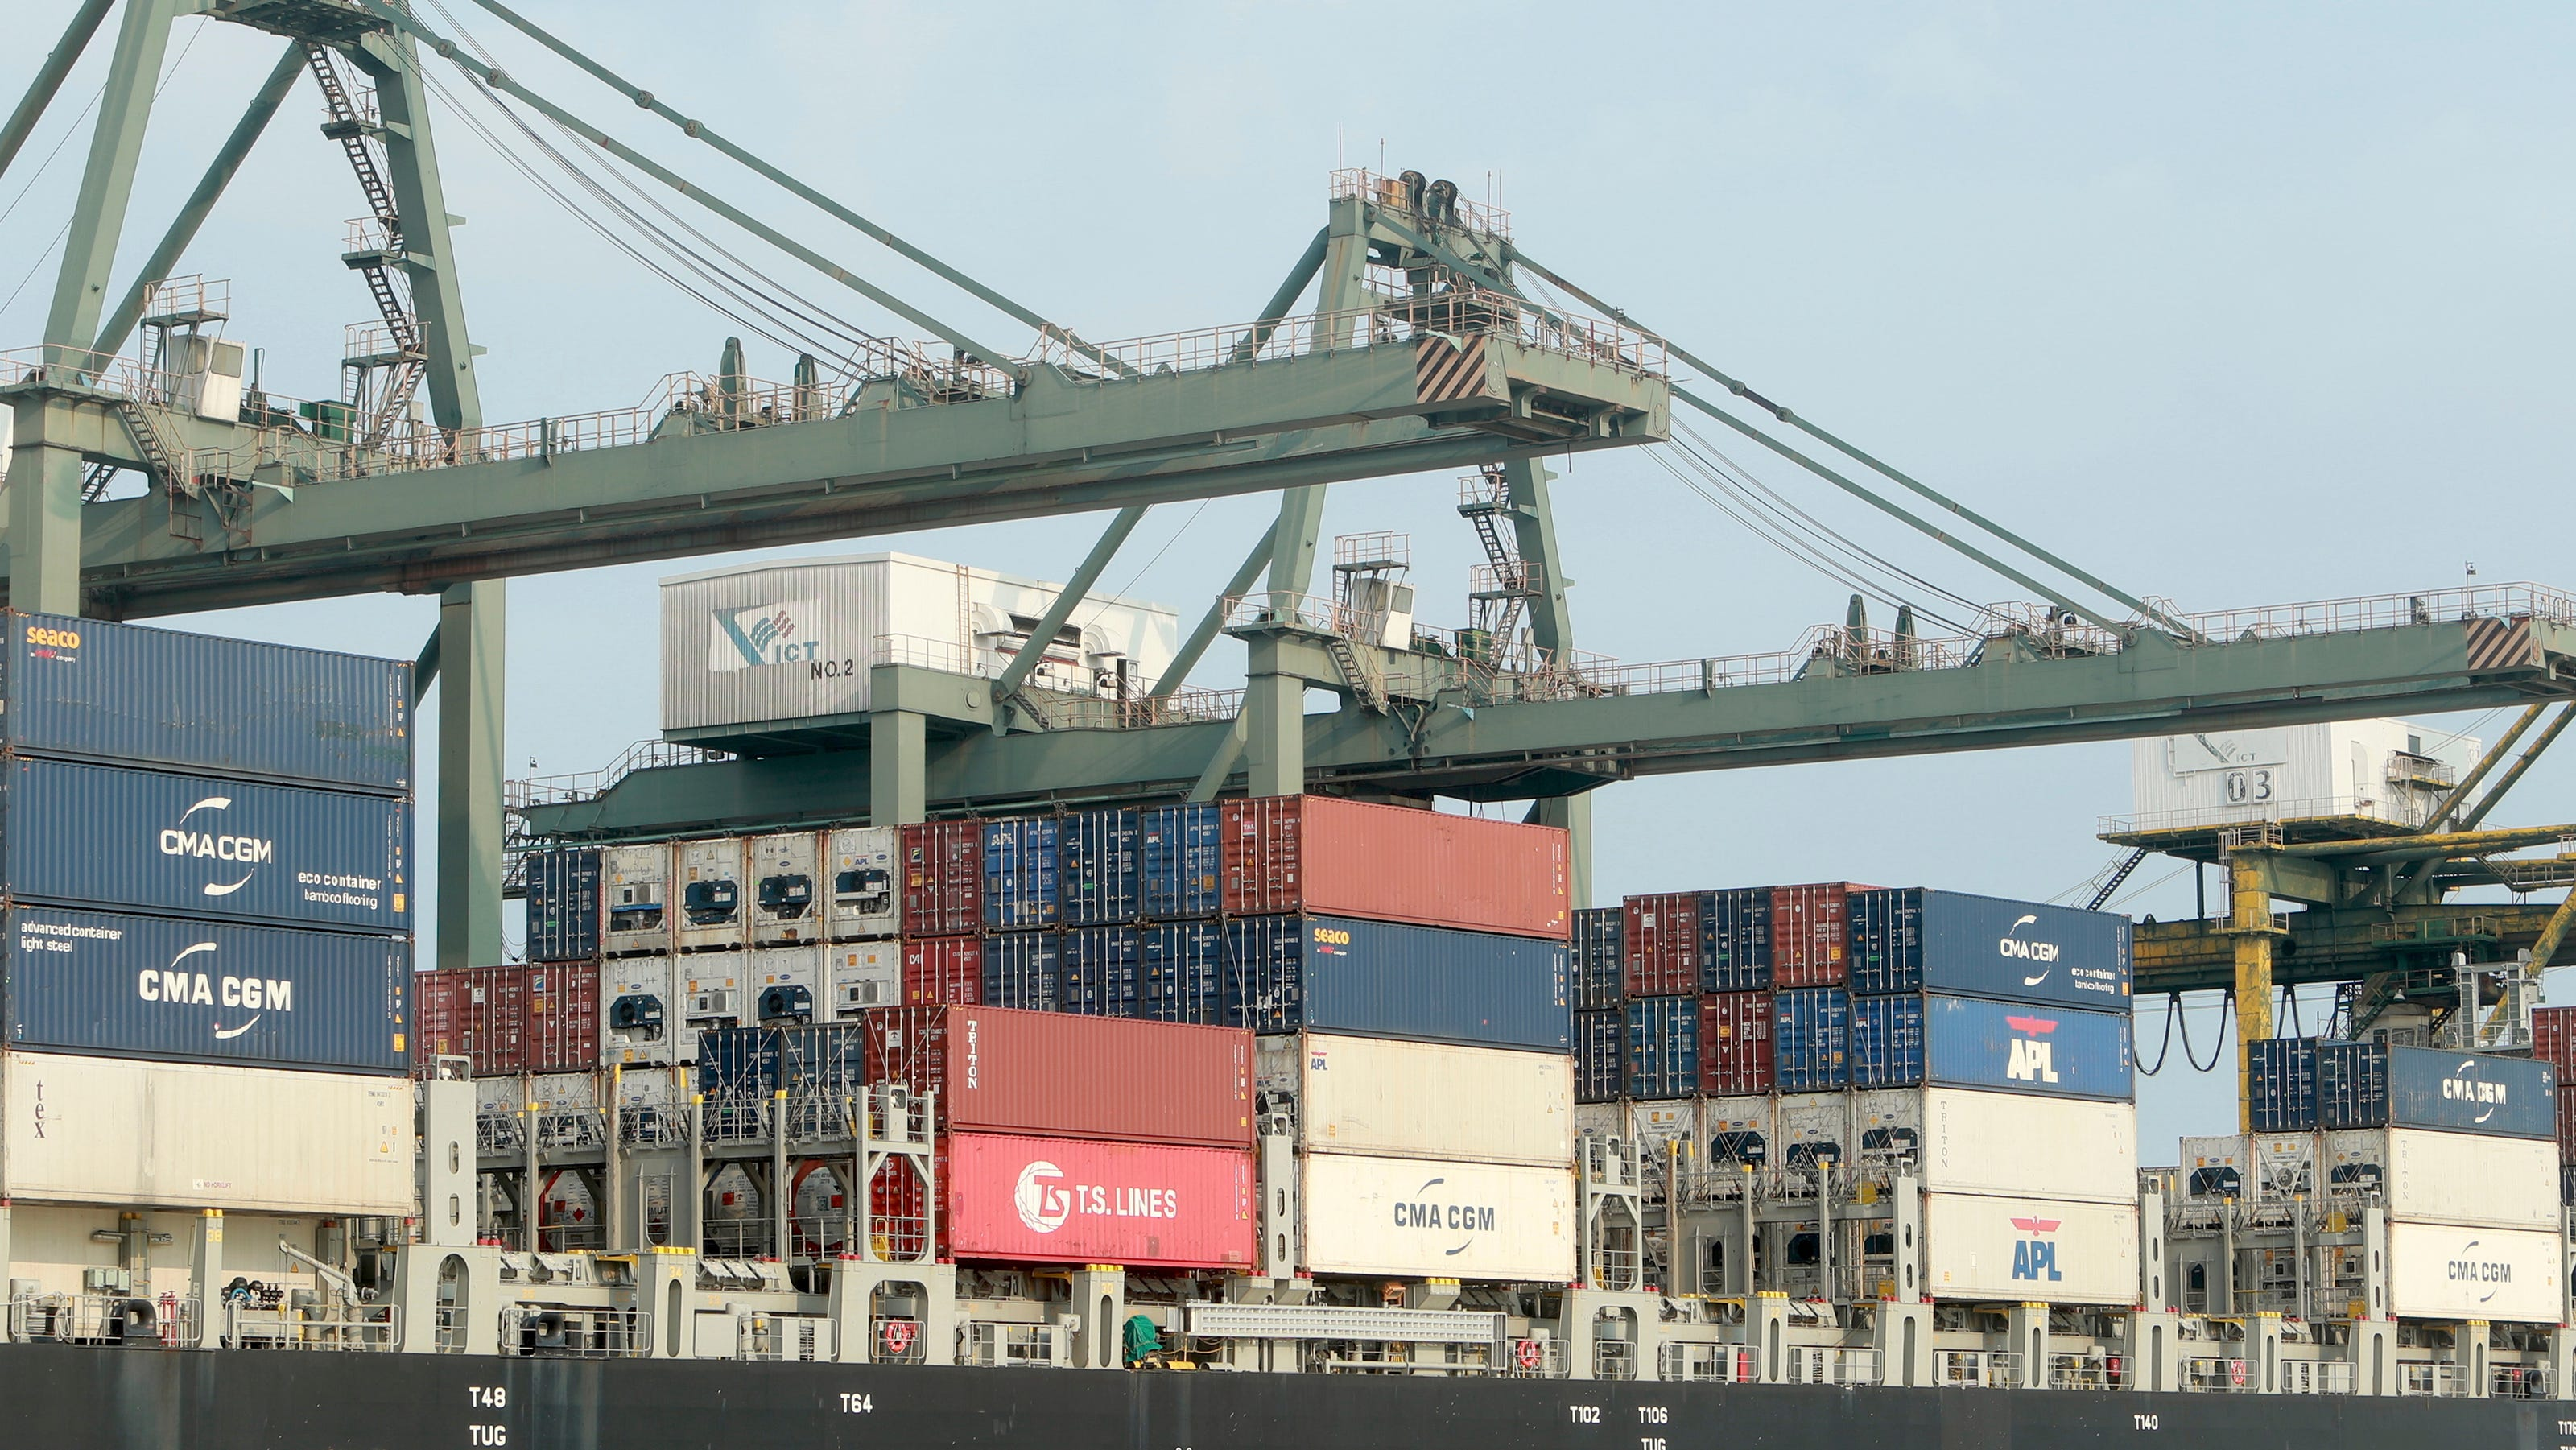 U.S. dairy exports continue, even as shipping issues create headwinds